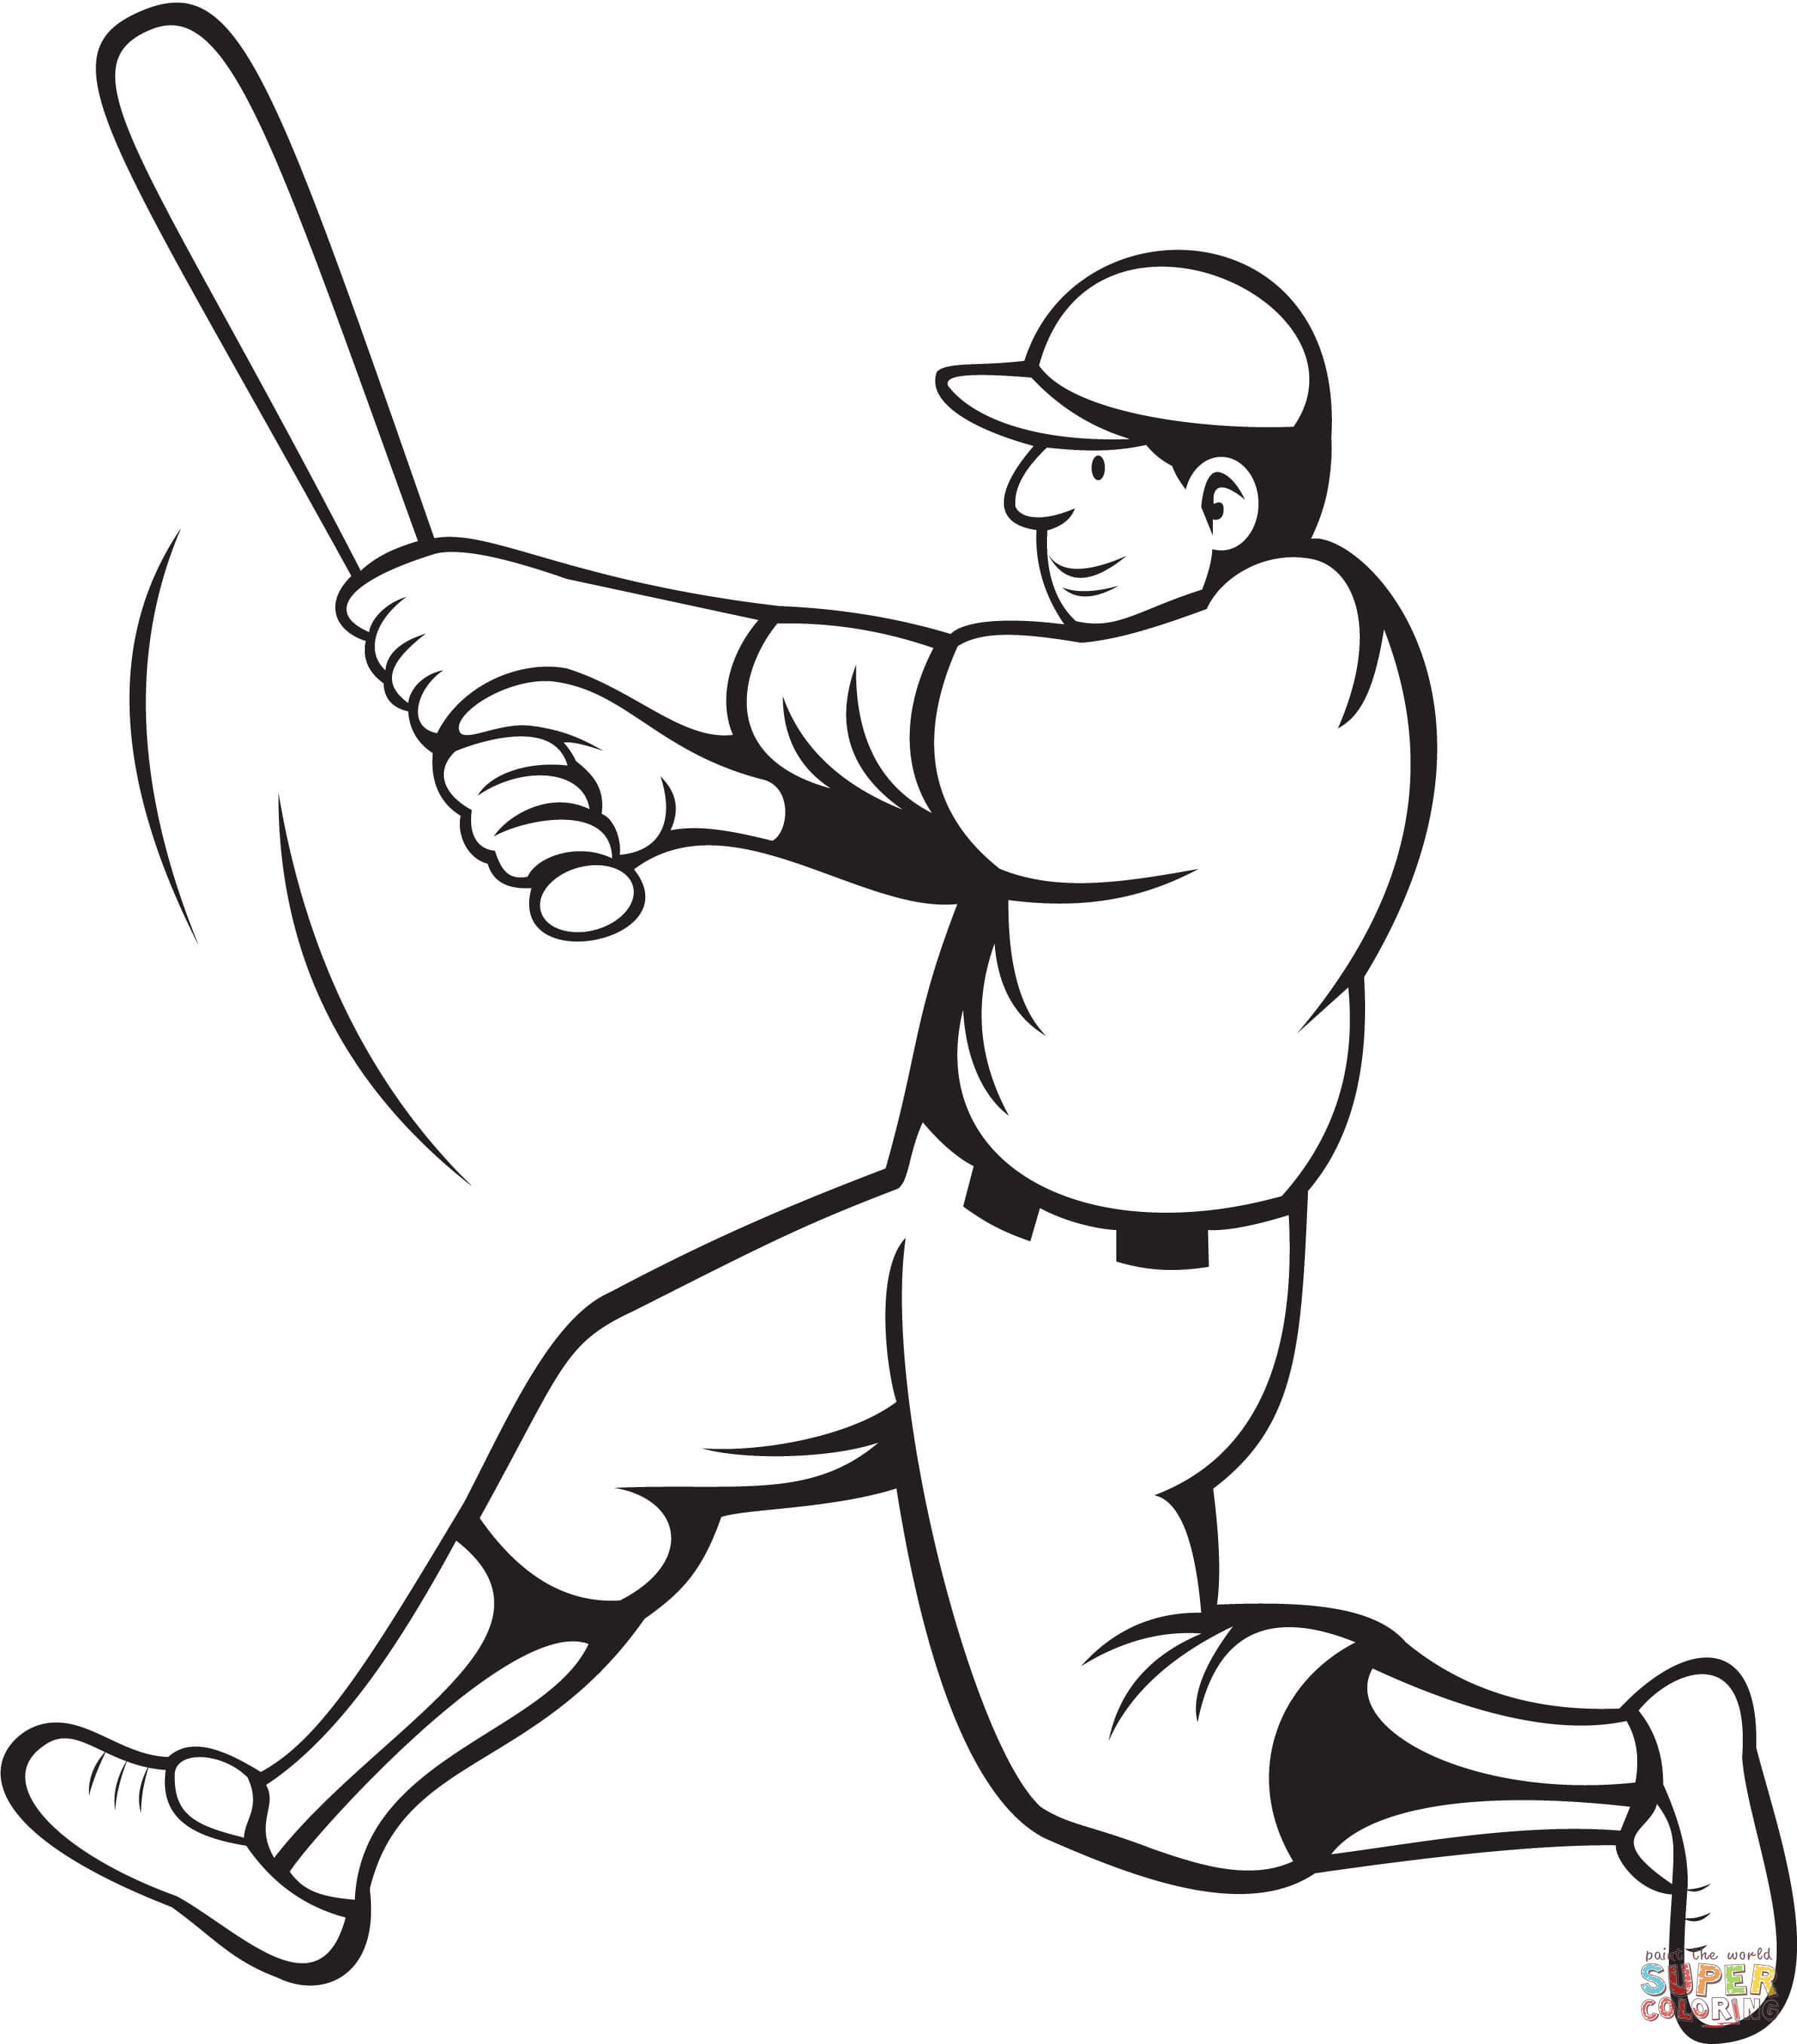 2384x2712 Downloads Baseball Coloring Sheet 21 About Remodel Drawing